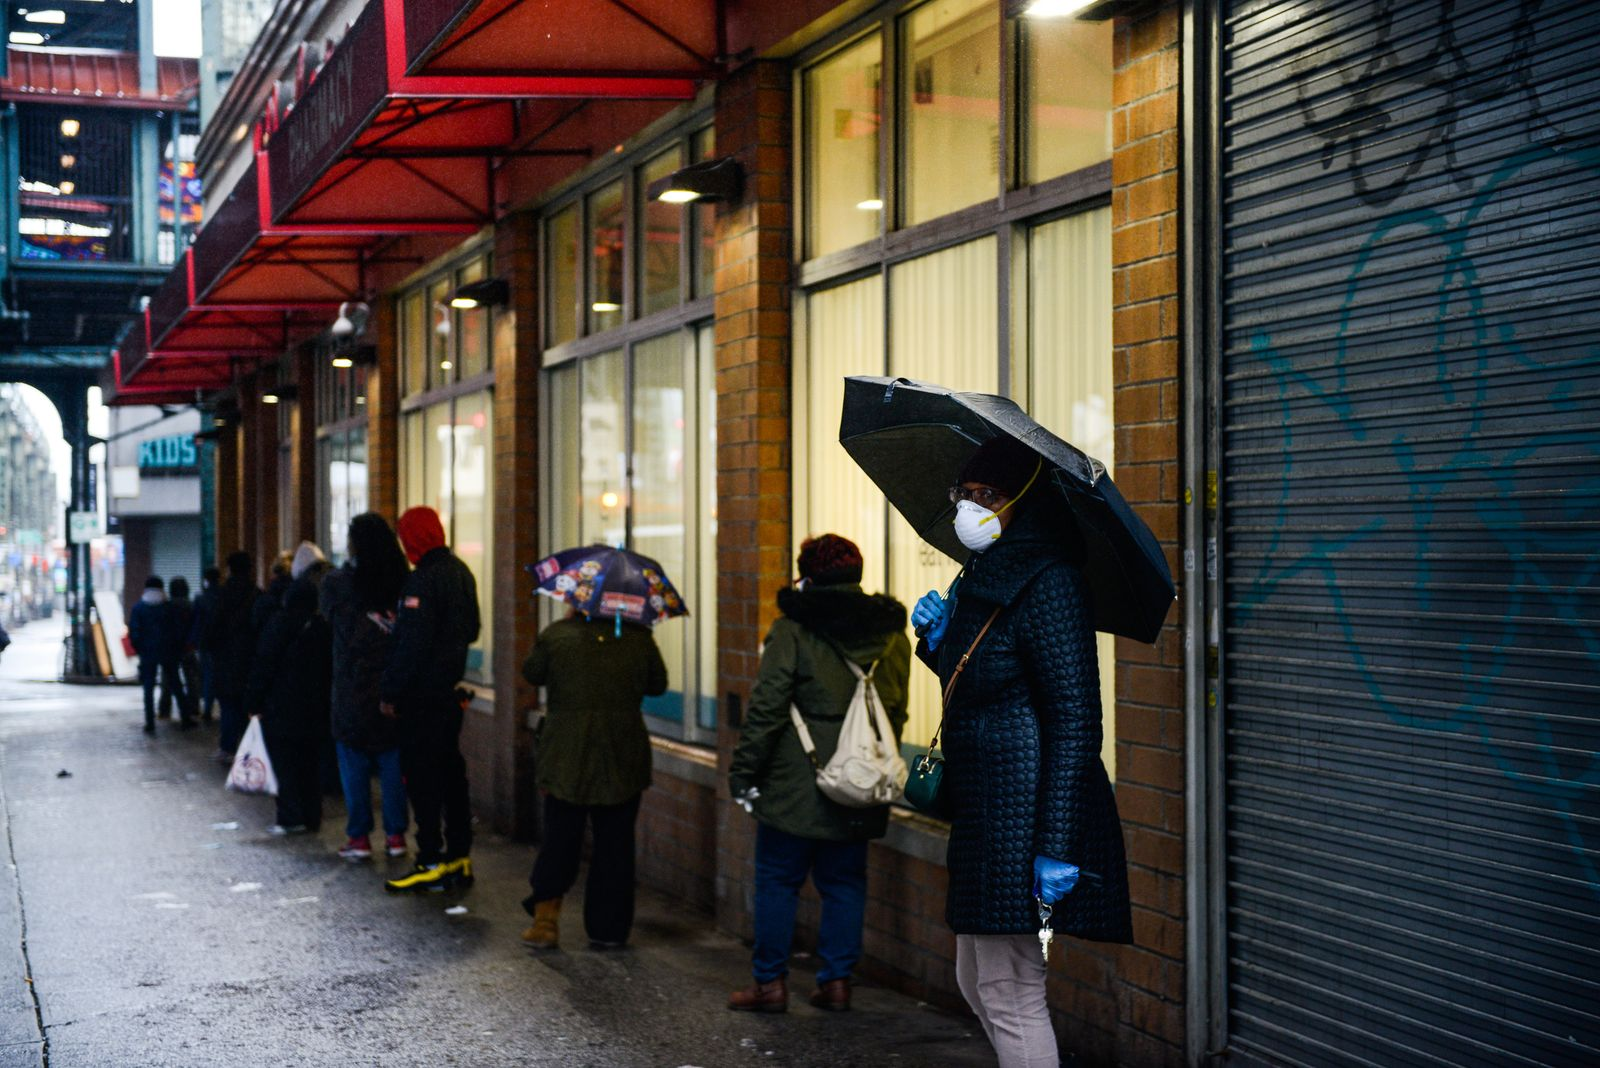 People in line on Sunday March 29, 2020. (Marian Carrasquero/The New York Times)